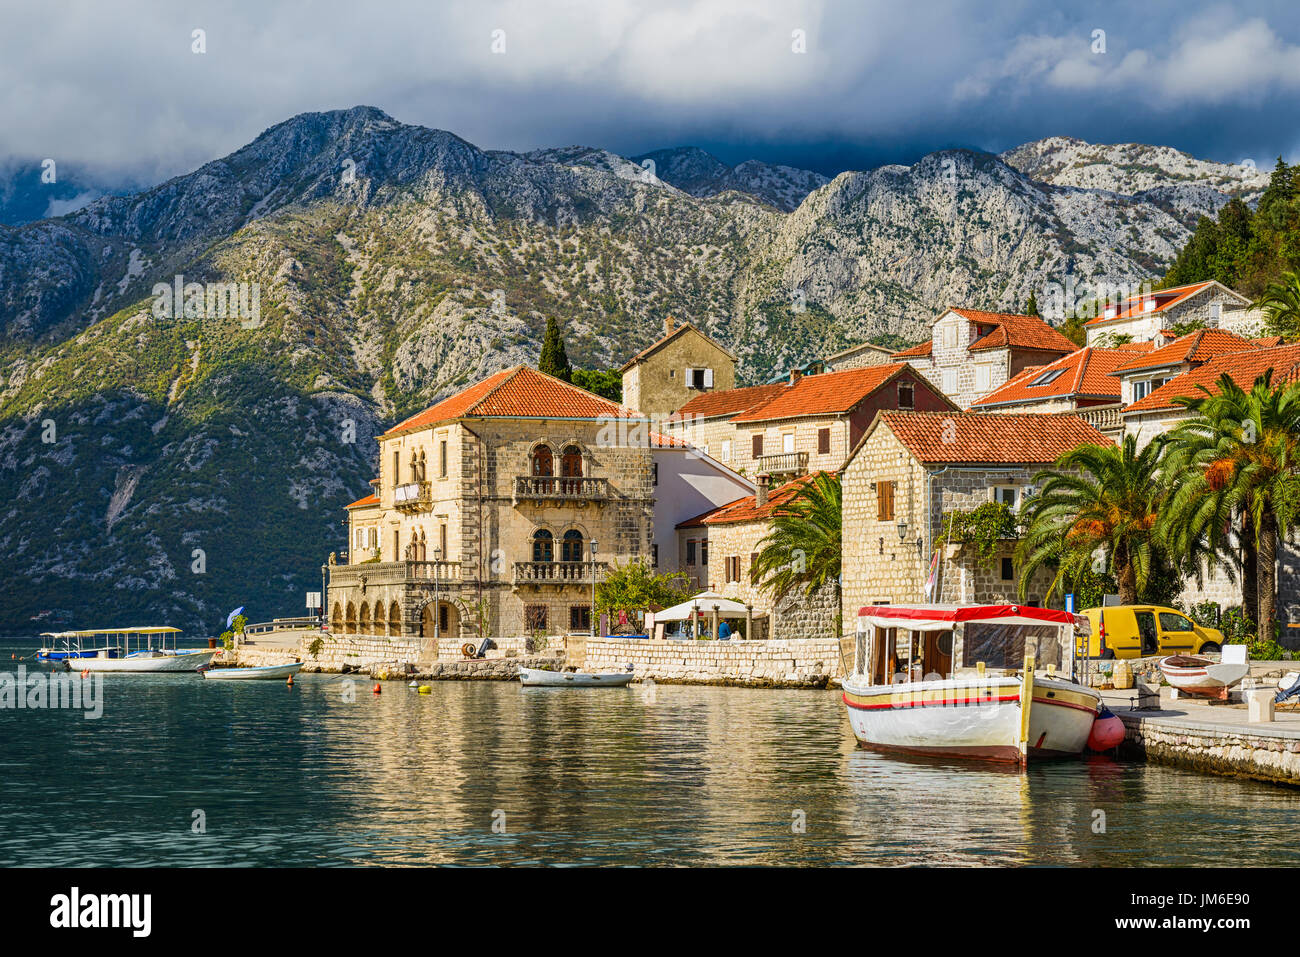 Perast town in the Bay of Kotor, Montenegro - Stock Image